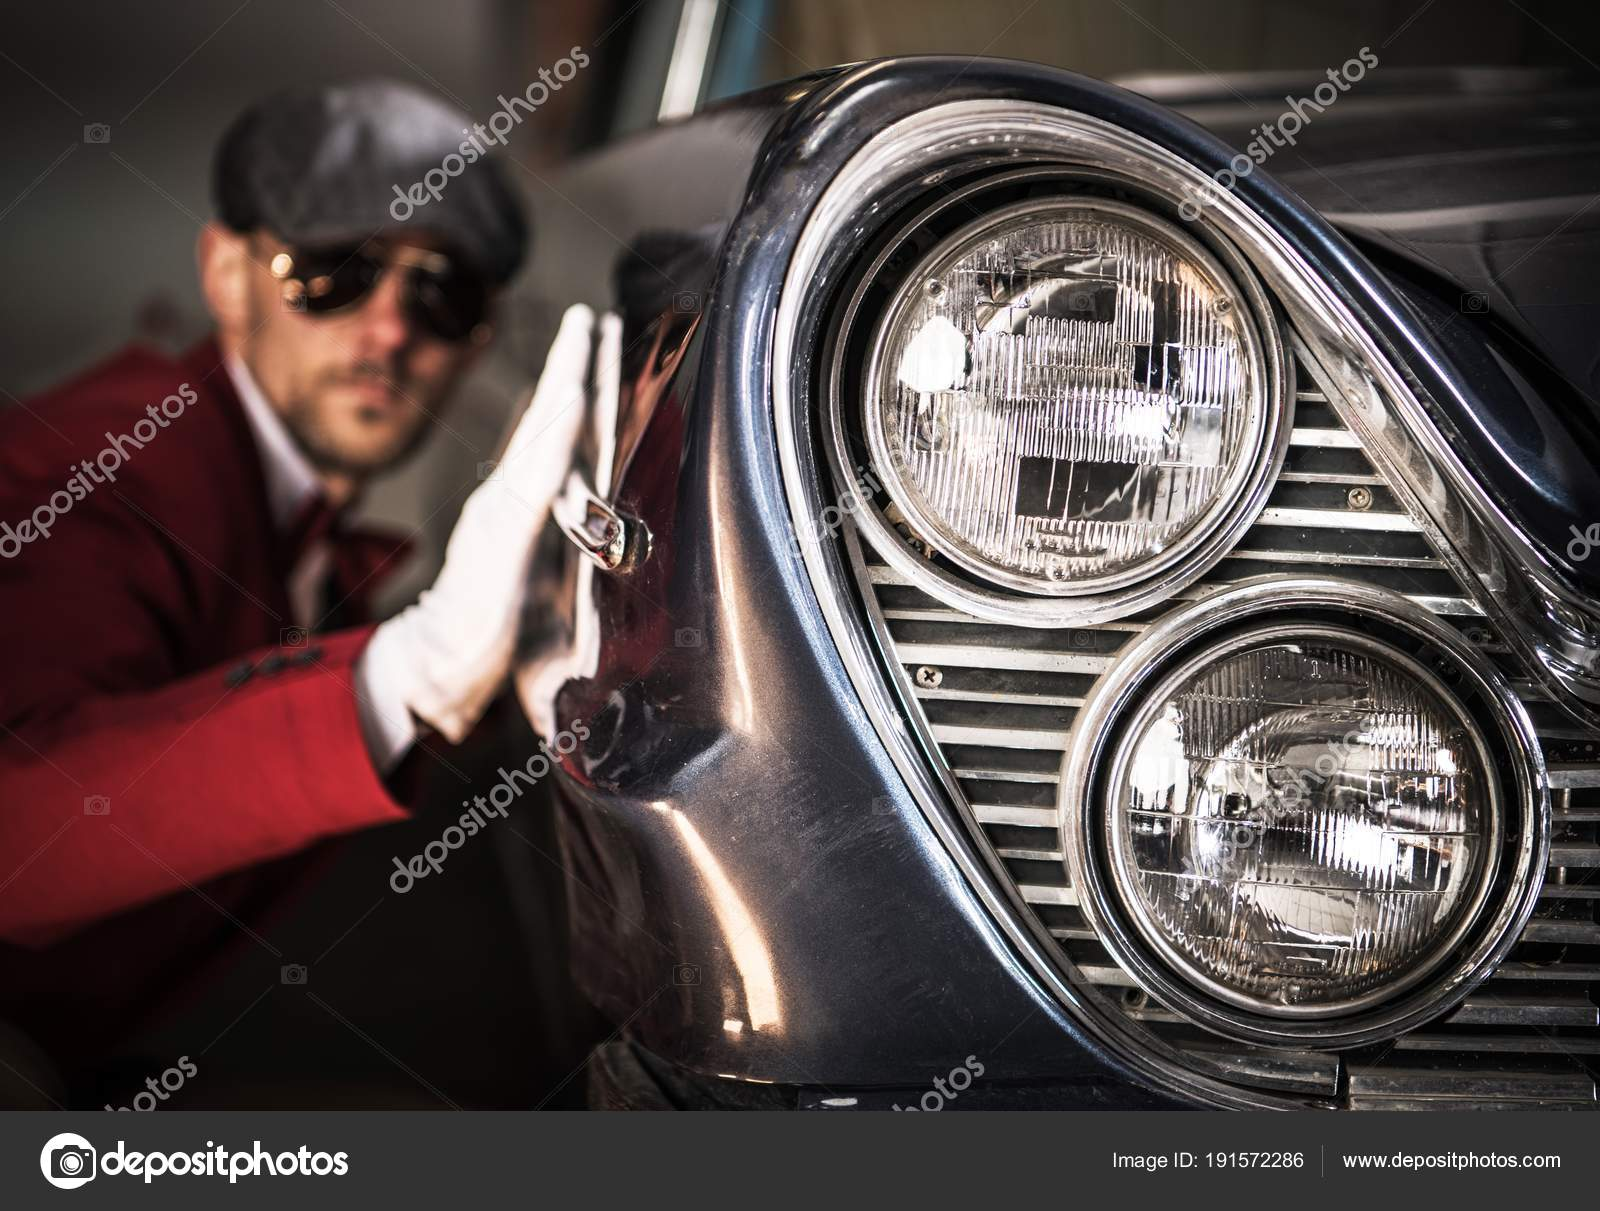 Classic Cars Enthusiasts — Stock Photo © welcomia #191572286